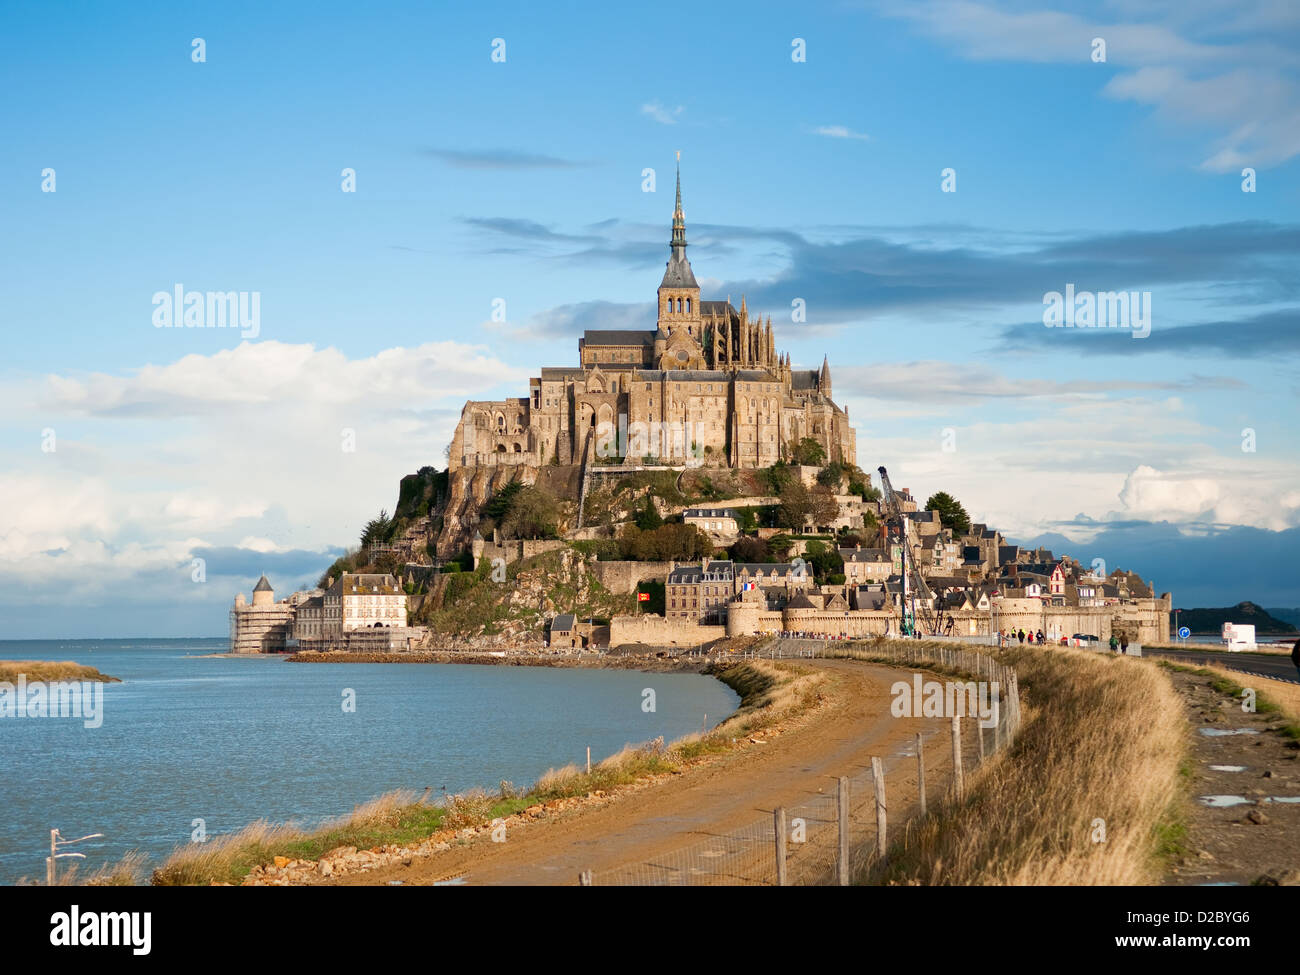 Mont Saint-Michel, Normandy, France. One of the most visited tourist sites in France. - Stock Image